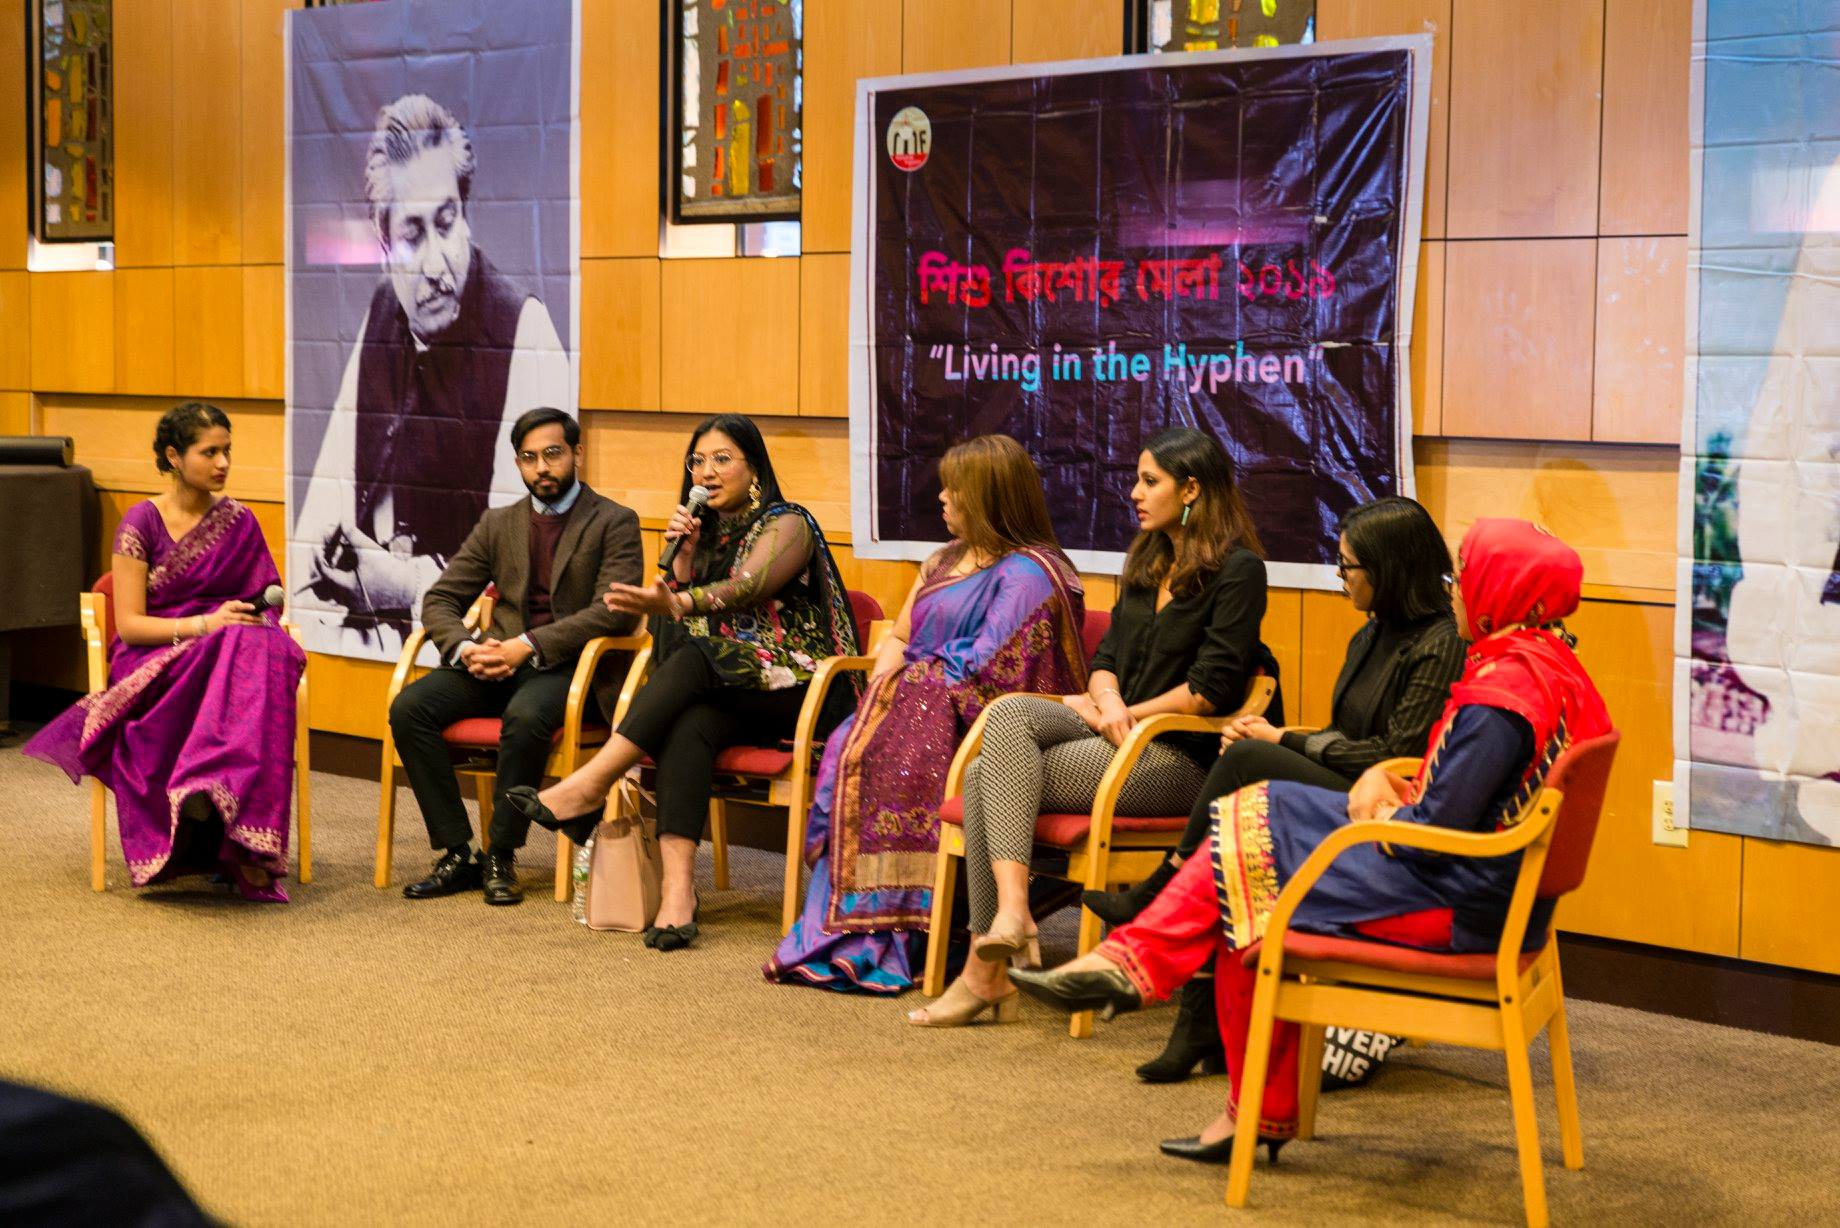 2020-ypf-panel-discussion-photo-by-wasi-ferdous-54728267